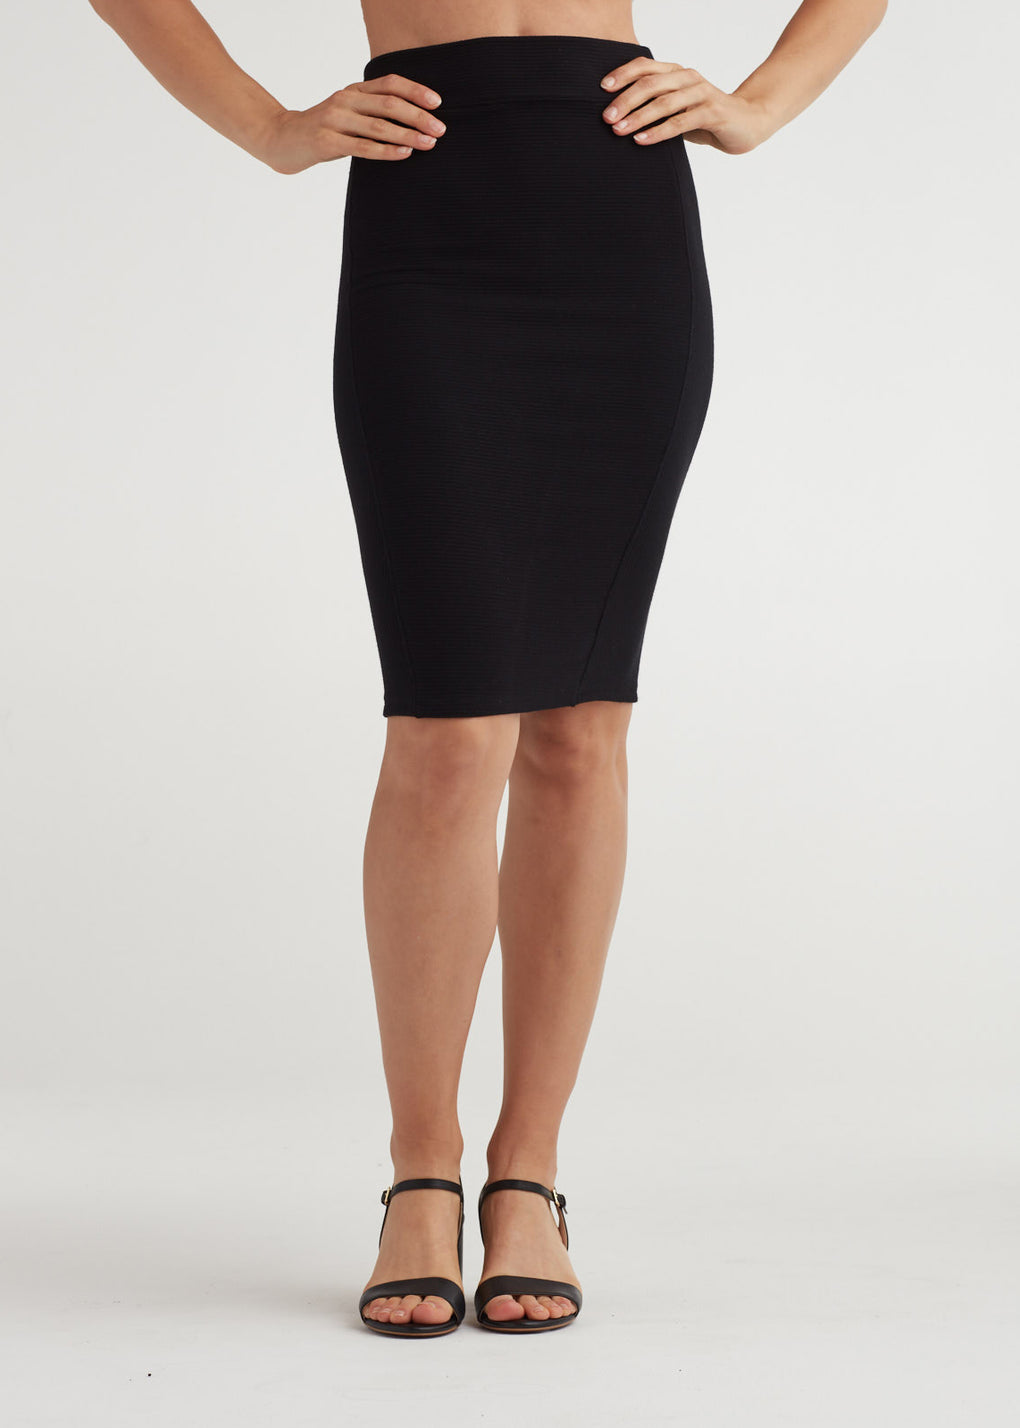 DIRECTIONAL PENCIL SKIRT